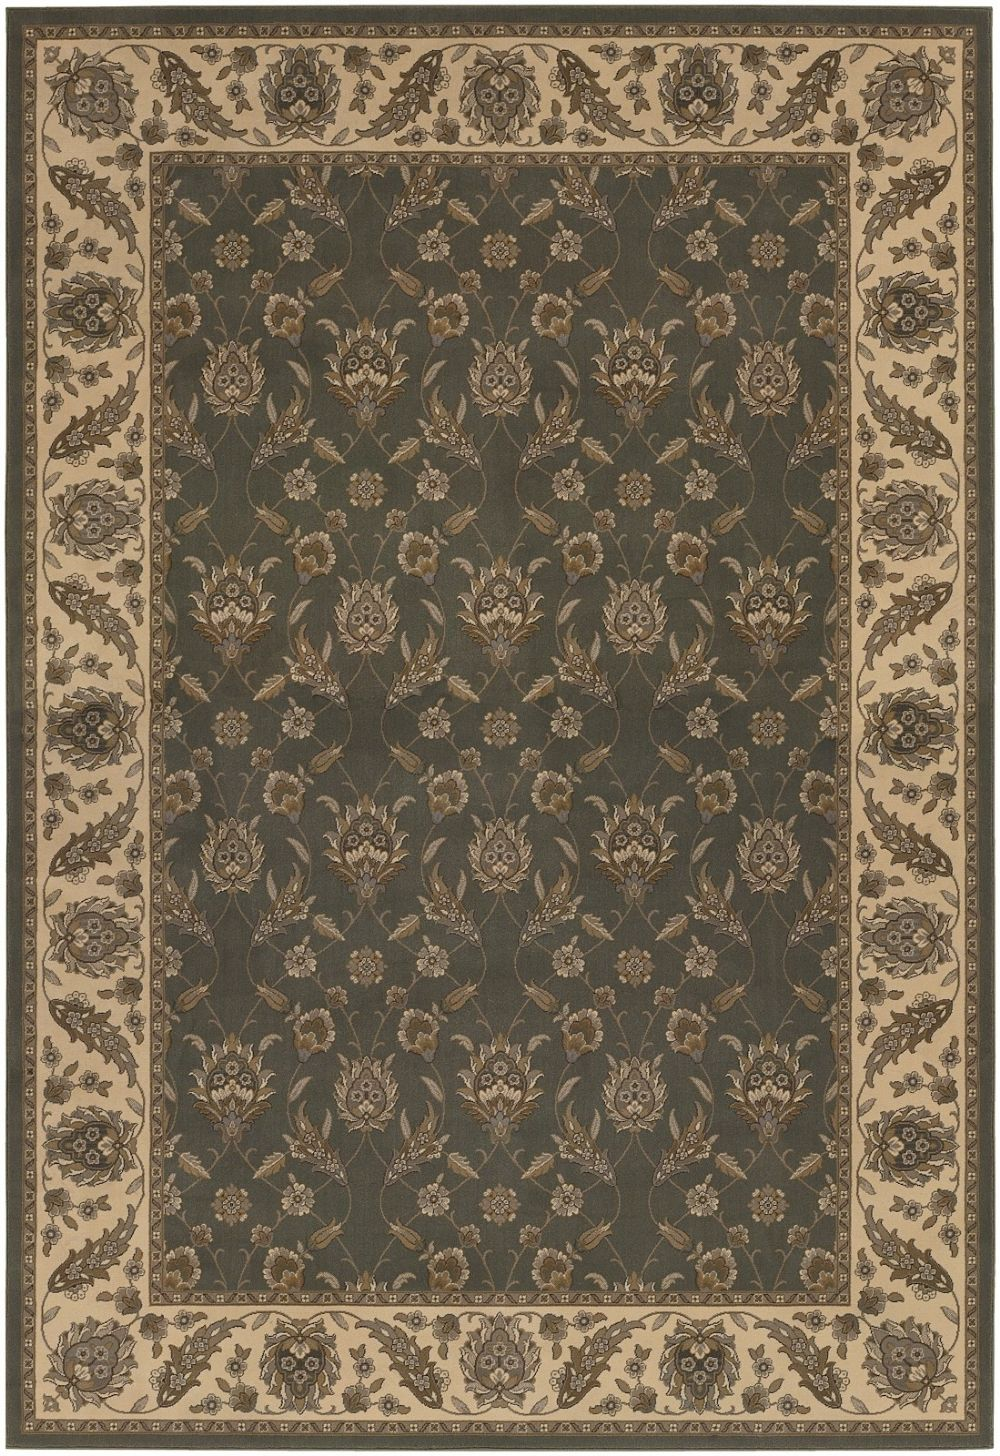 couristan palladino traditional area rug collection